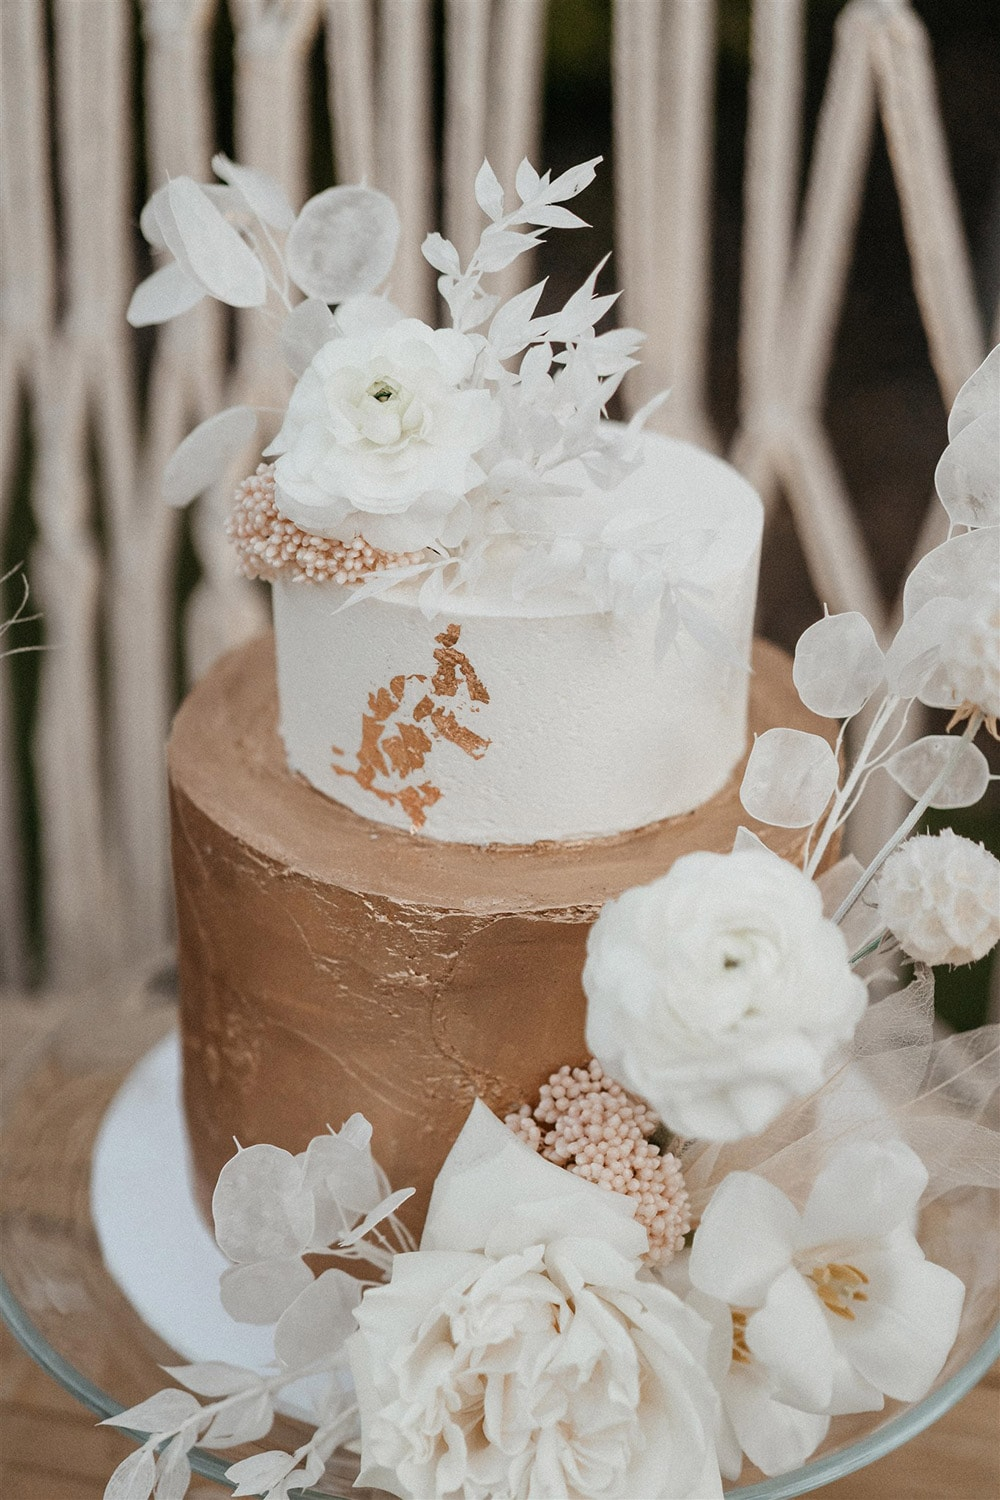 Outdoor Festival Bohemian Wedding Inspiration   A two tiered wedding cake sits on a clear glass cake plate. The top tier features smooth white buttercream with a trail of gold leaf, while the bottom tier features textured gold buttercream. The cake is decorated with artful sprays of white dried silver dollar eucalyptus, ruscus, scabiosa pods and skeleton leaves, blush dried rice flower and fresh white roses, tulips and ranunculus.   Photography: Shae Estella Photo